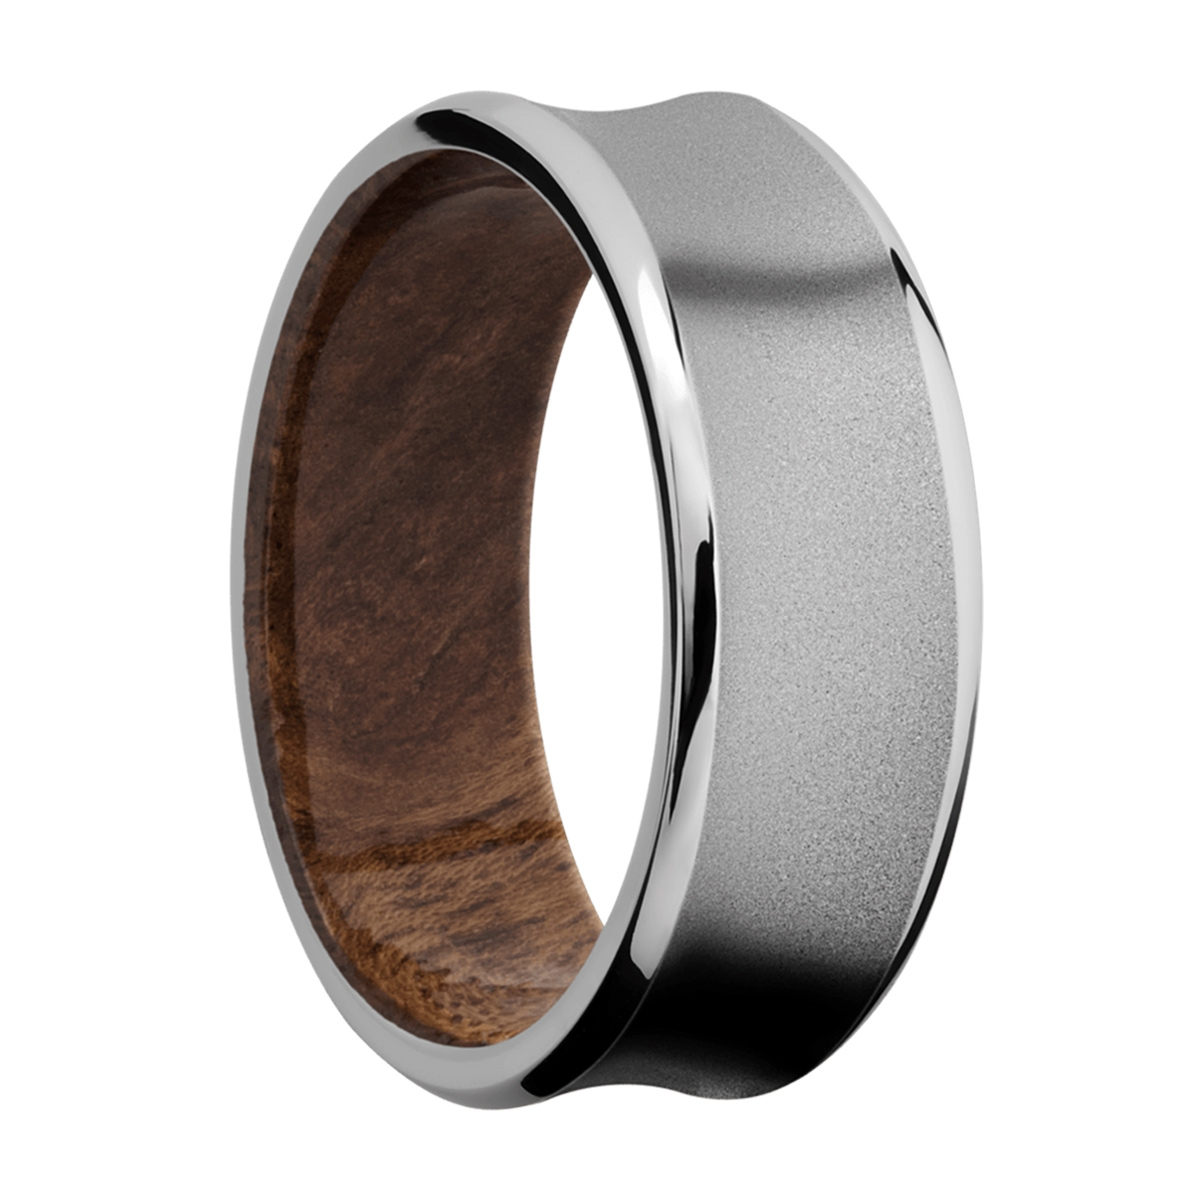 Lashbrook HWSLEEVECC8CB Cobalt Chrome and Hardwood Wedding Ring or Band Alternative View 1